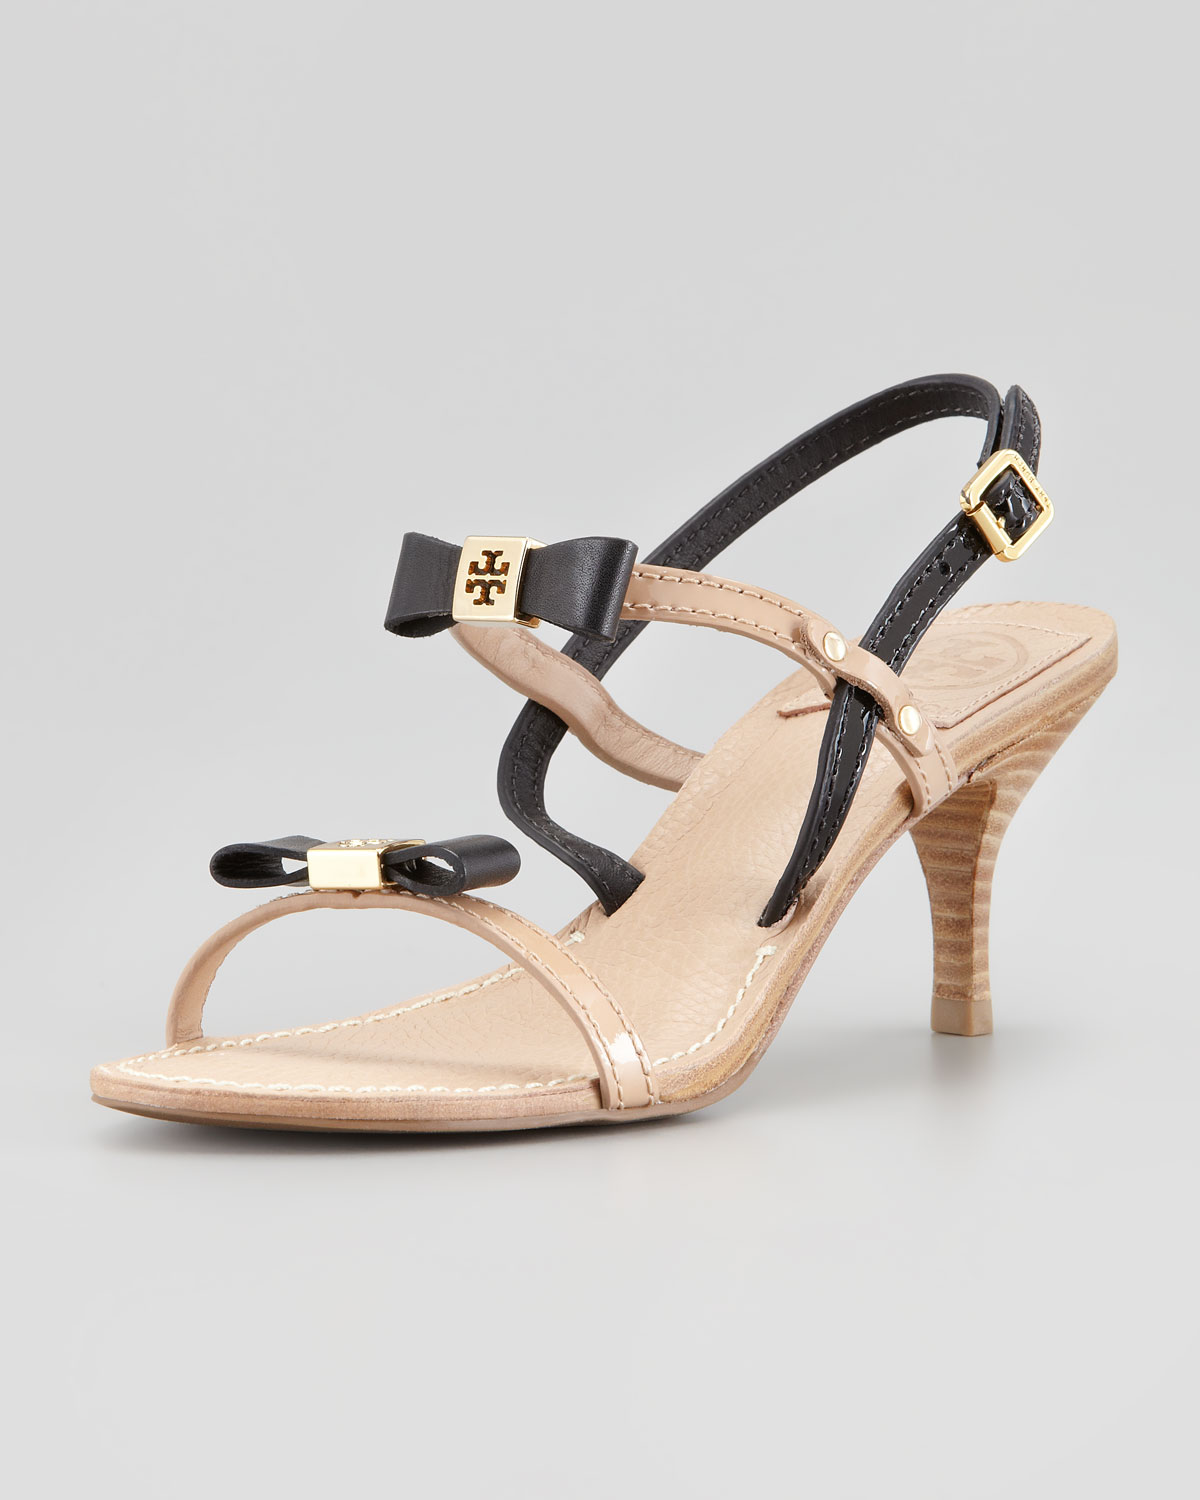 42aa7a174a6 ... low price lyst tory burch kailey two tone bow sandal in black 82492  04095